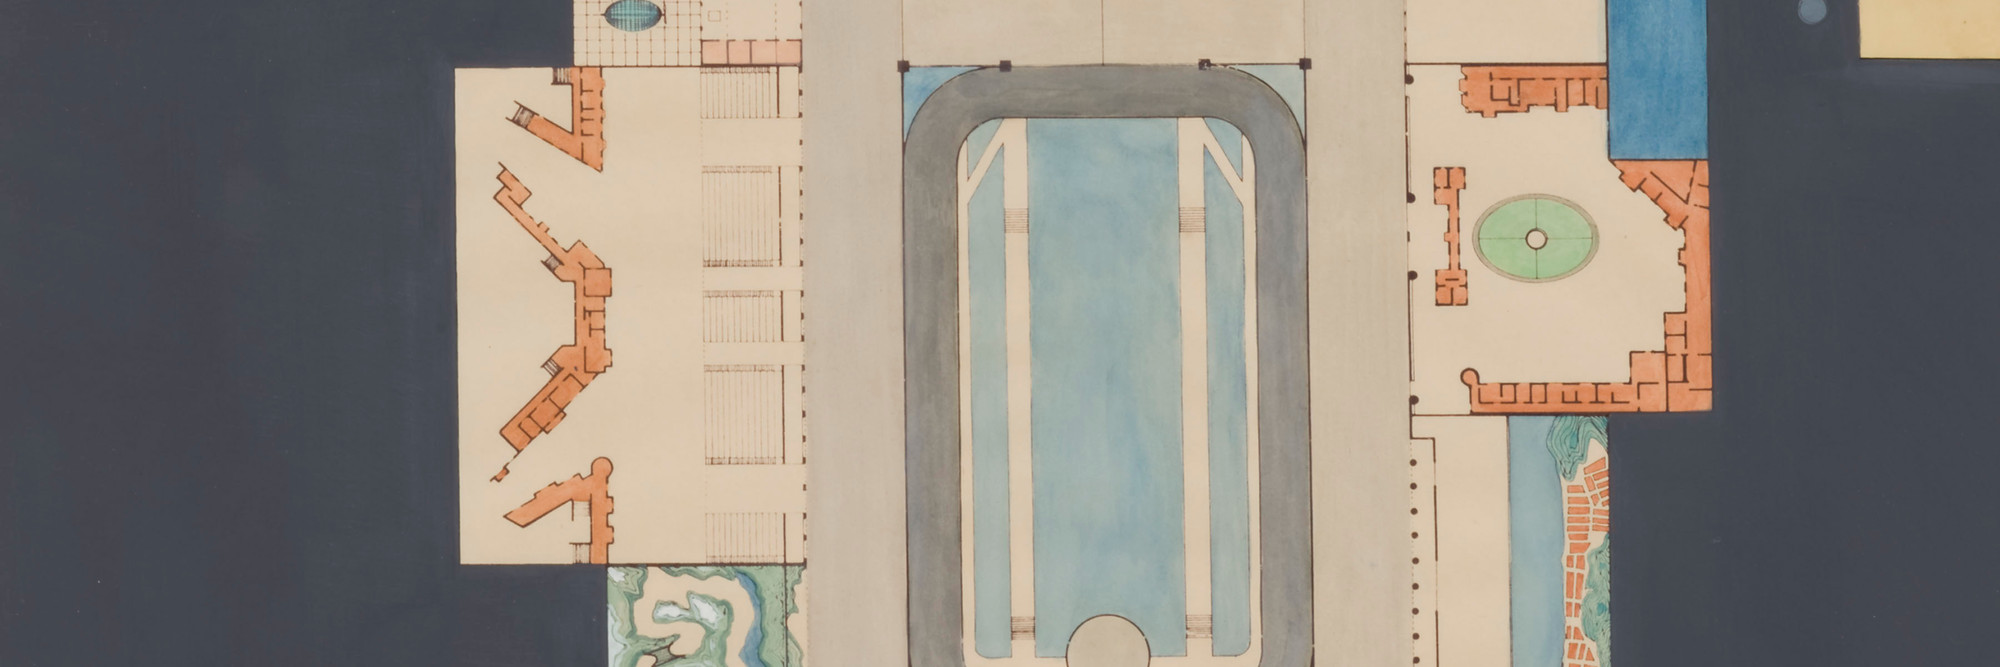 Rem Koolhaas. <em>Plan of Dreamland.</em> 1977. Watercolor and ink, 41 3/4 × 22″ (106 × 55.9 cm). Gift of Frederieke S. Taylor. © 2008 Rem Koolhaas